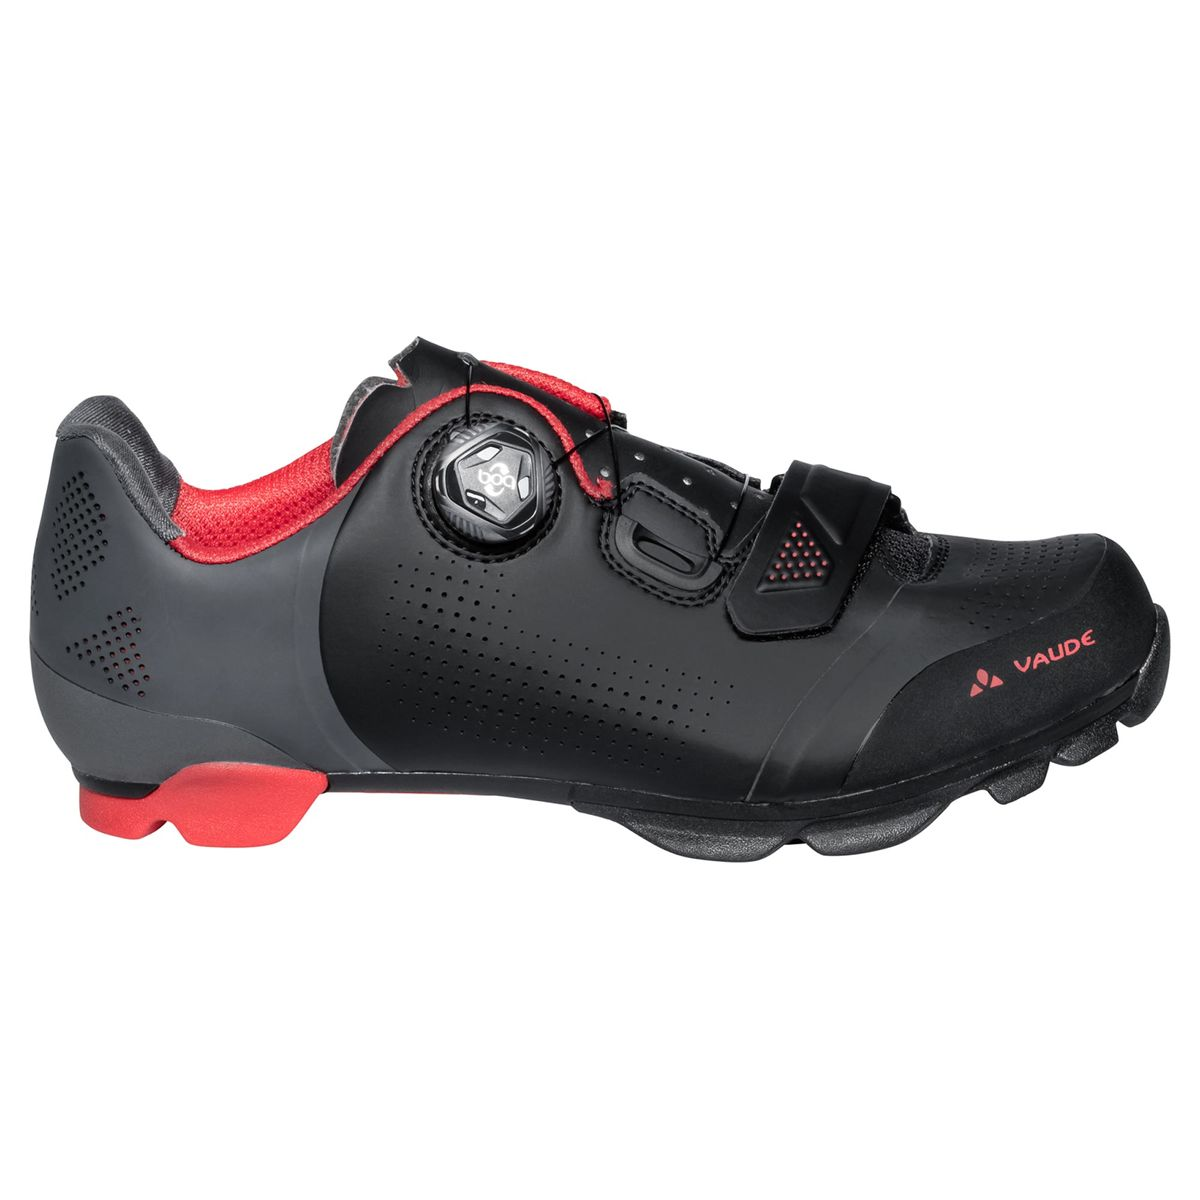 cheaper 51885 cd531 VAUDE MTB Snar Pro Mountainbike Schuhe